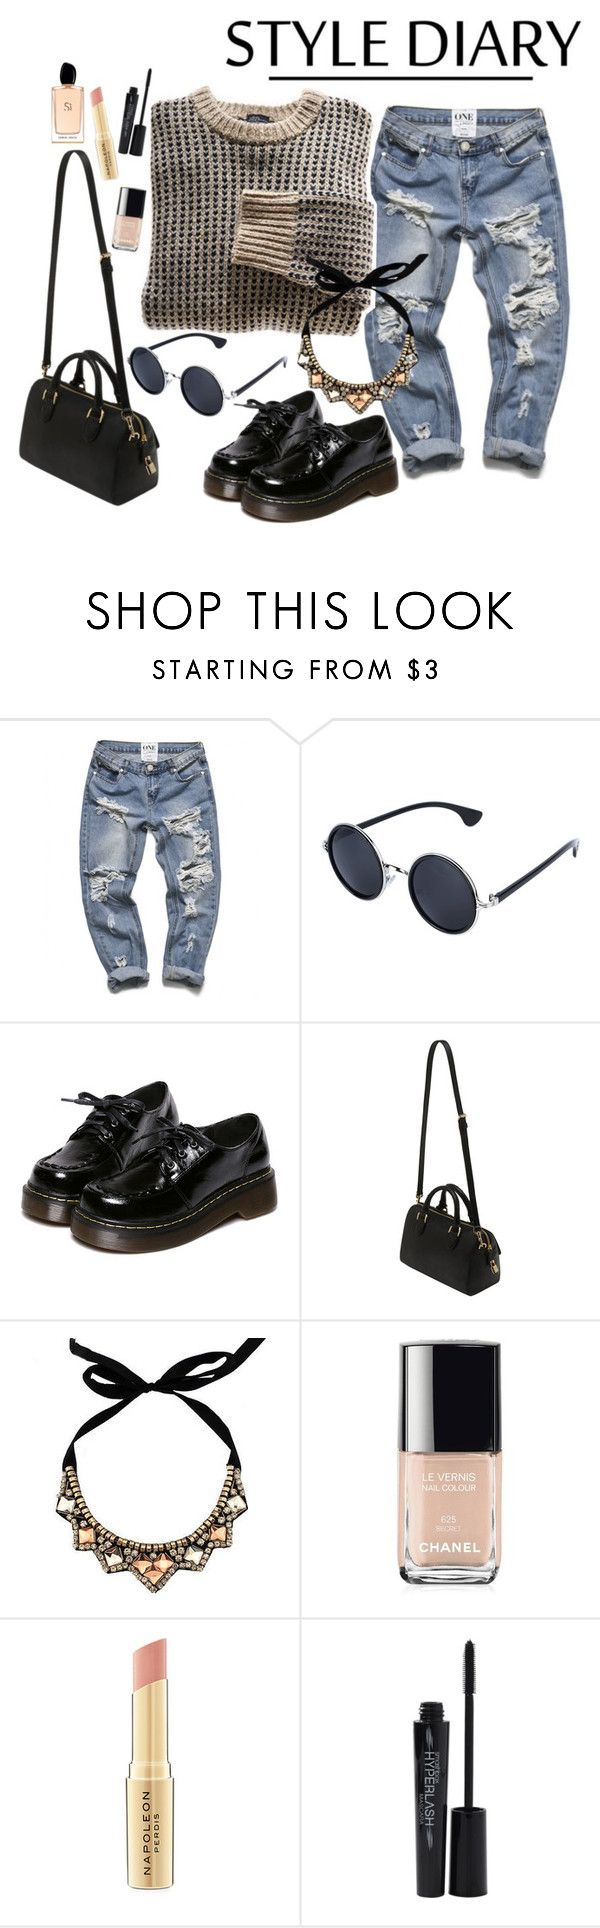 """street style"" by camilazeballo on Polyvore featuring moda, WithChic, Mulberry, Chanel, Napoleon Perdis, Smashbox y Giorgio Armani"